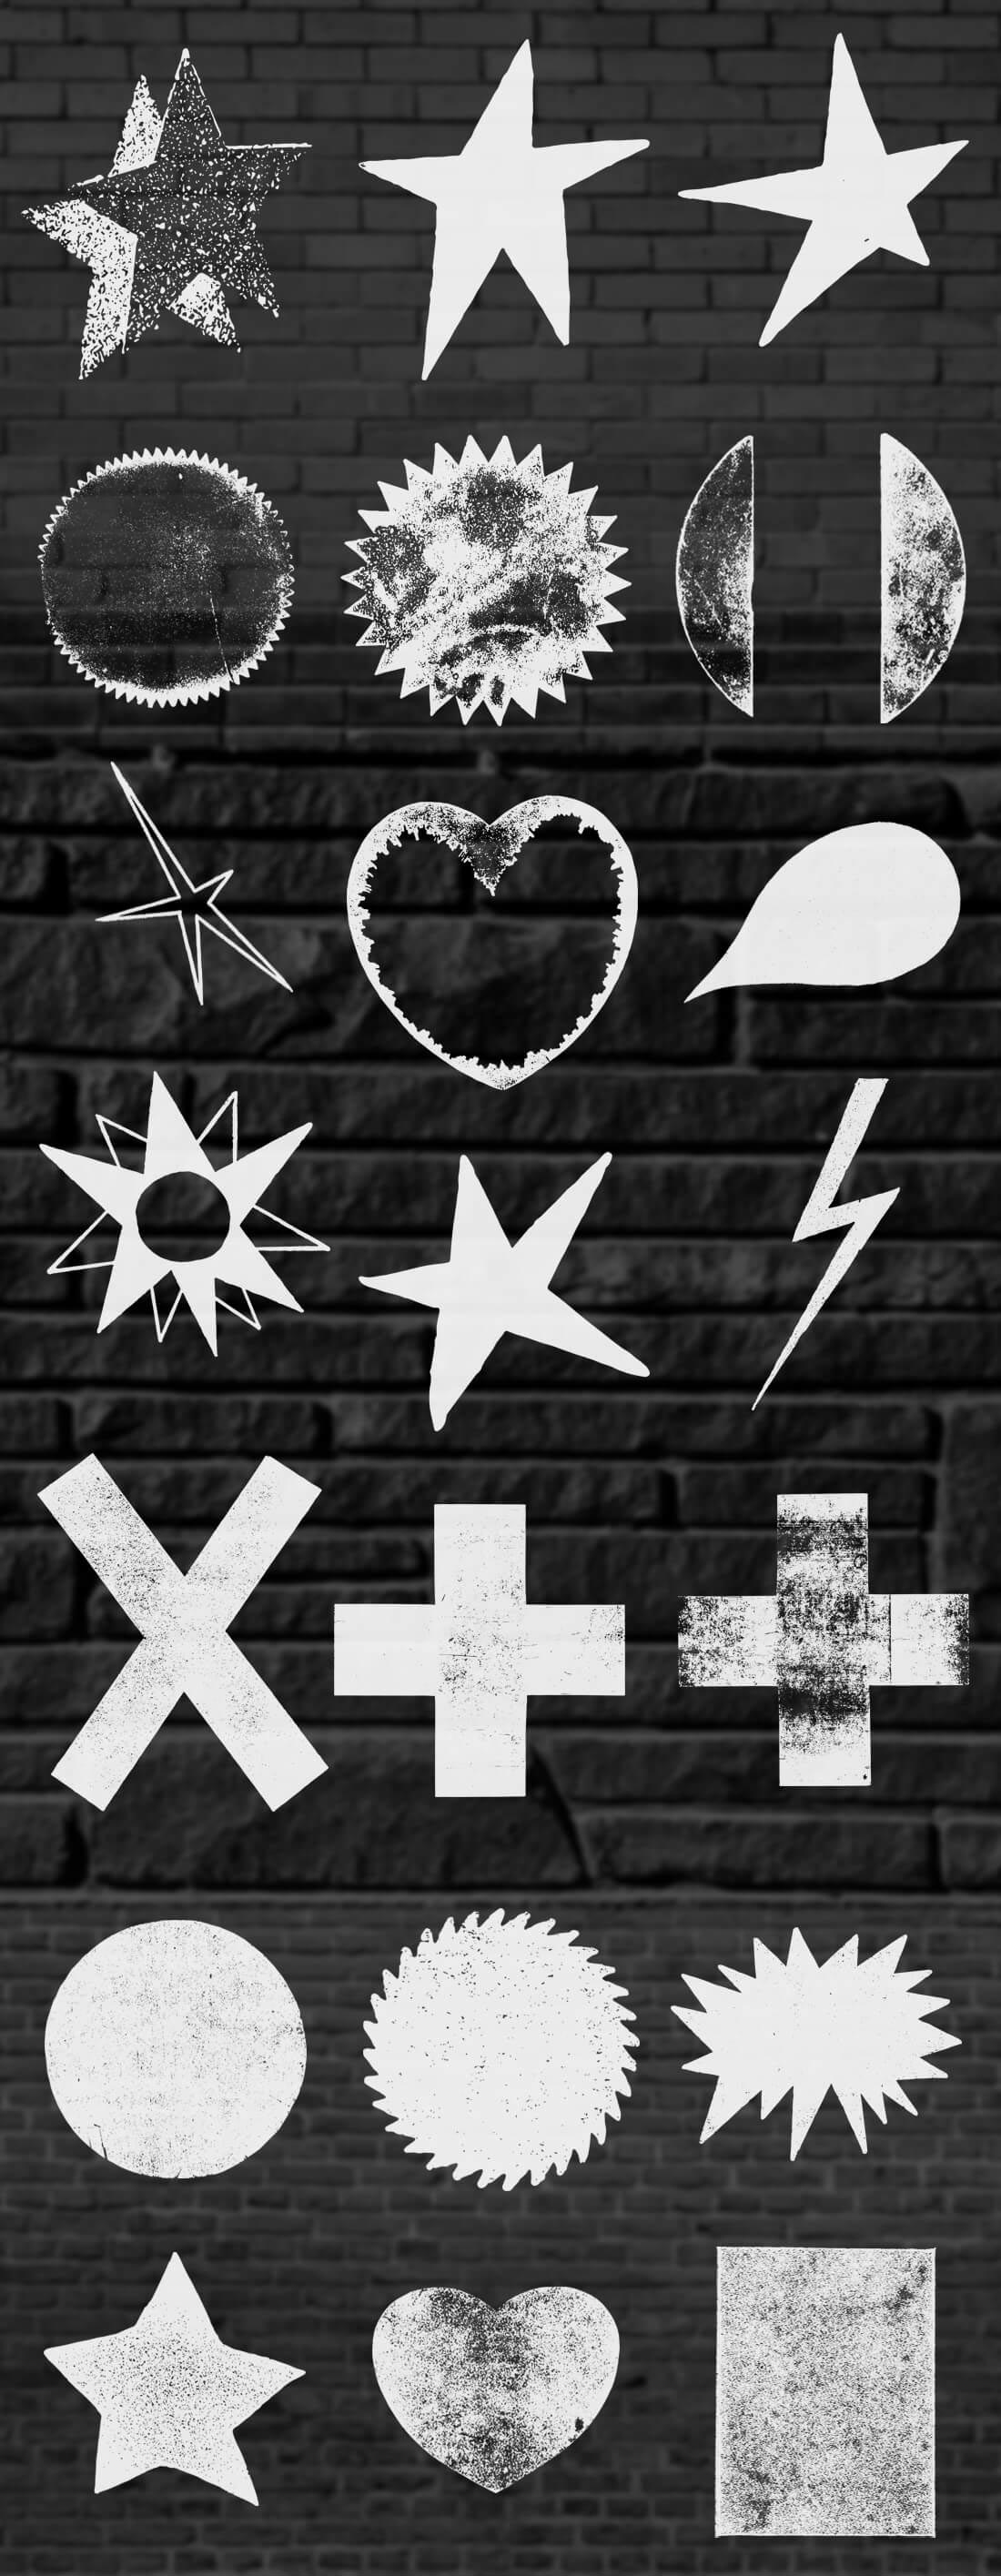 ultrashock-grunge-shapes-and-symbols-3